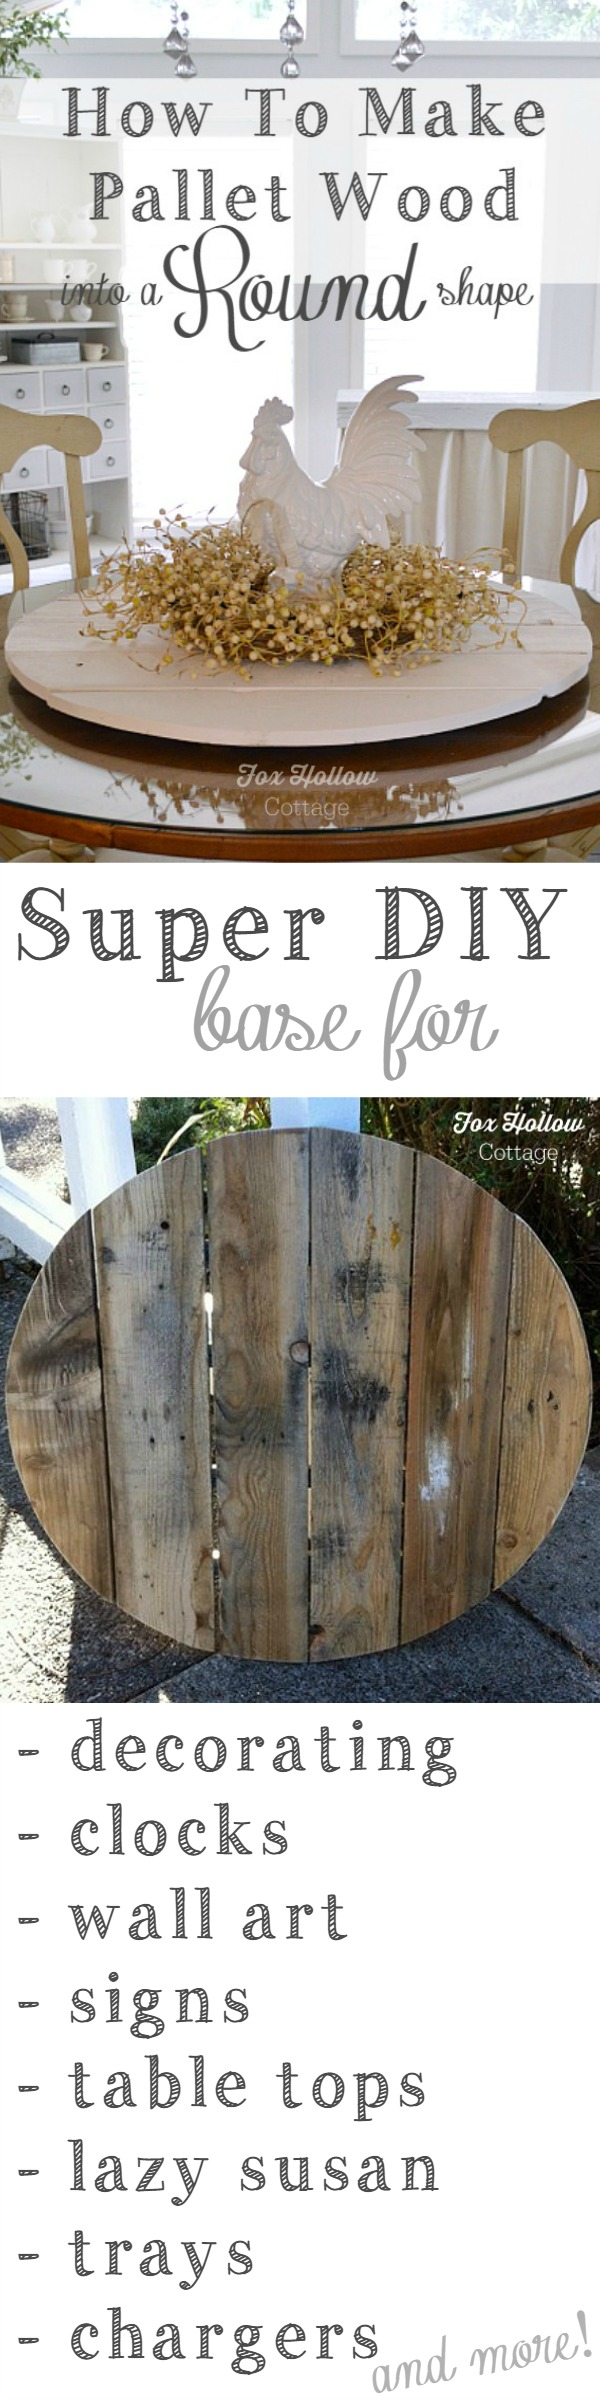 How To Make Pallet Wood Into A Round Circle Shape Fox Hollow Cottage